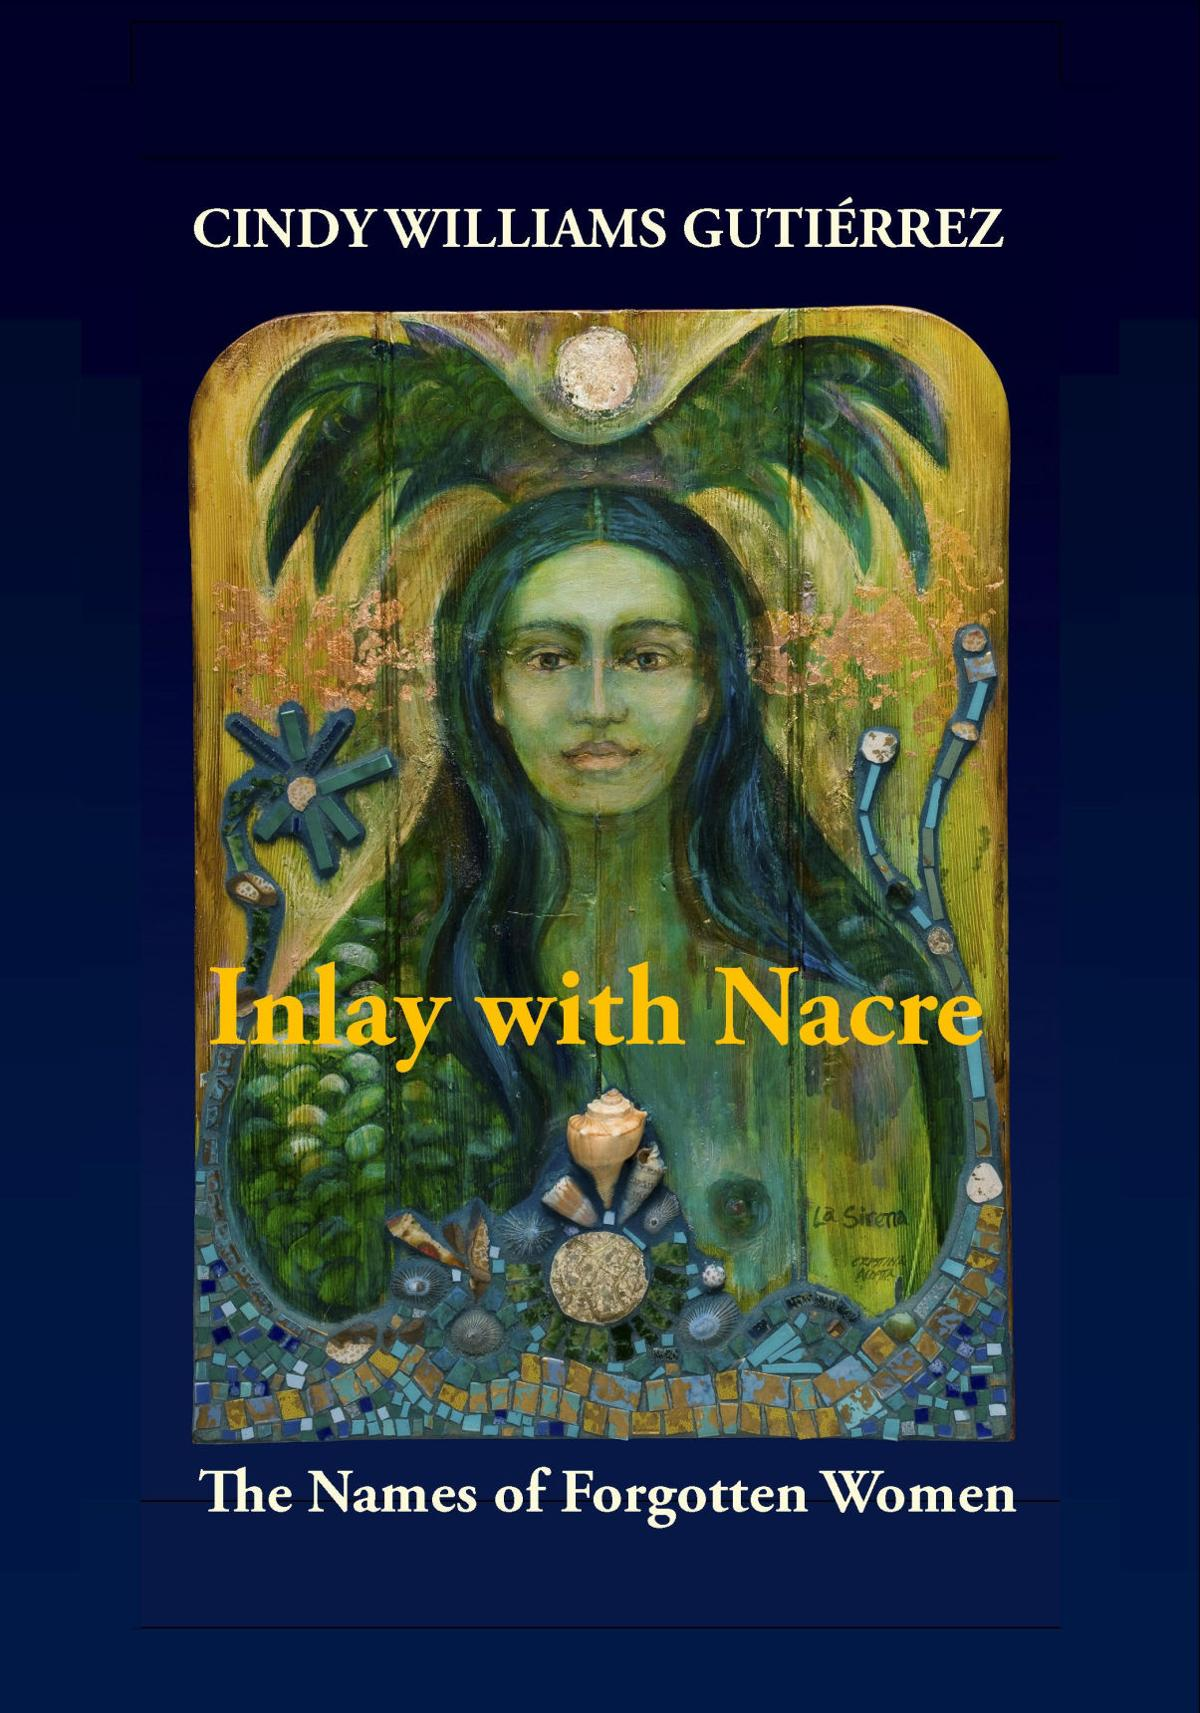 'Inlay with Nacre: The Names of Forgotten Women' by Cindy Williams Gutiérrez